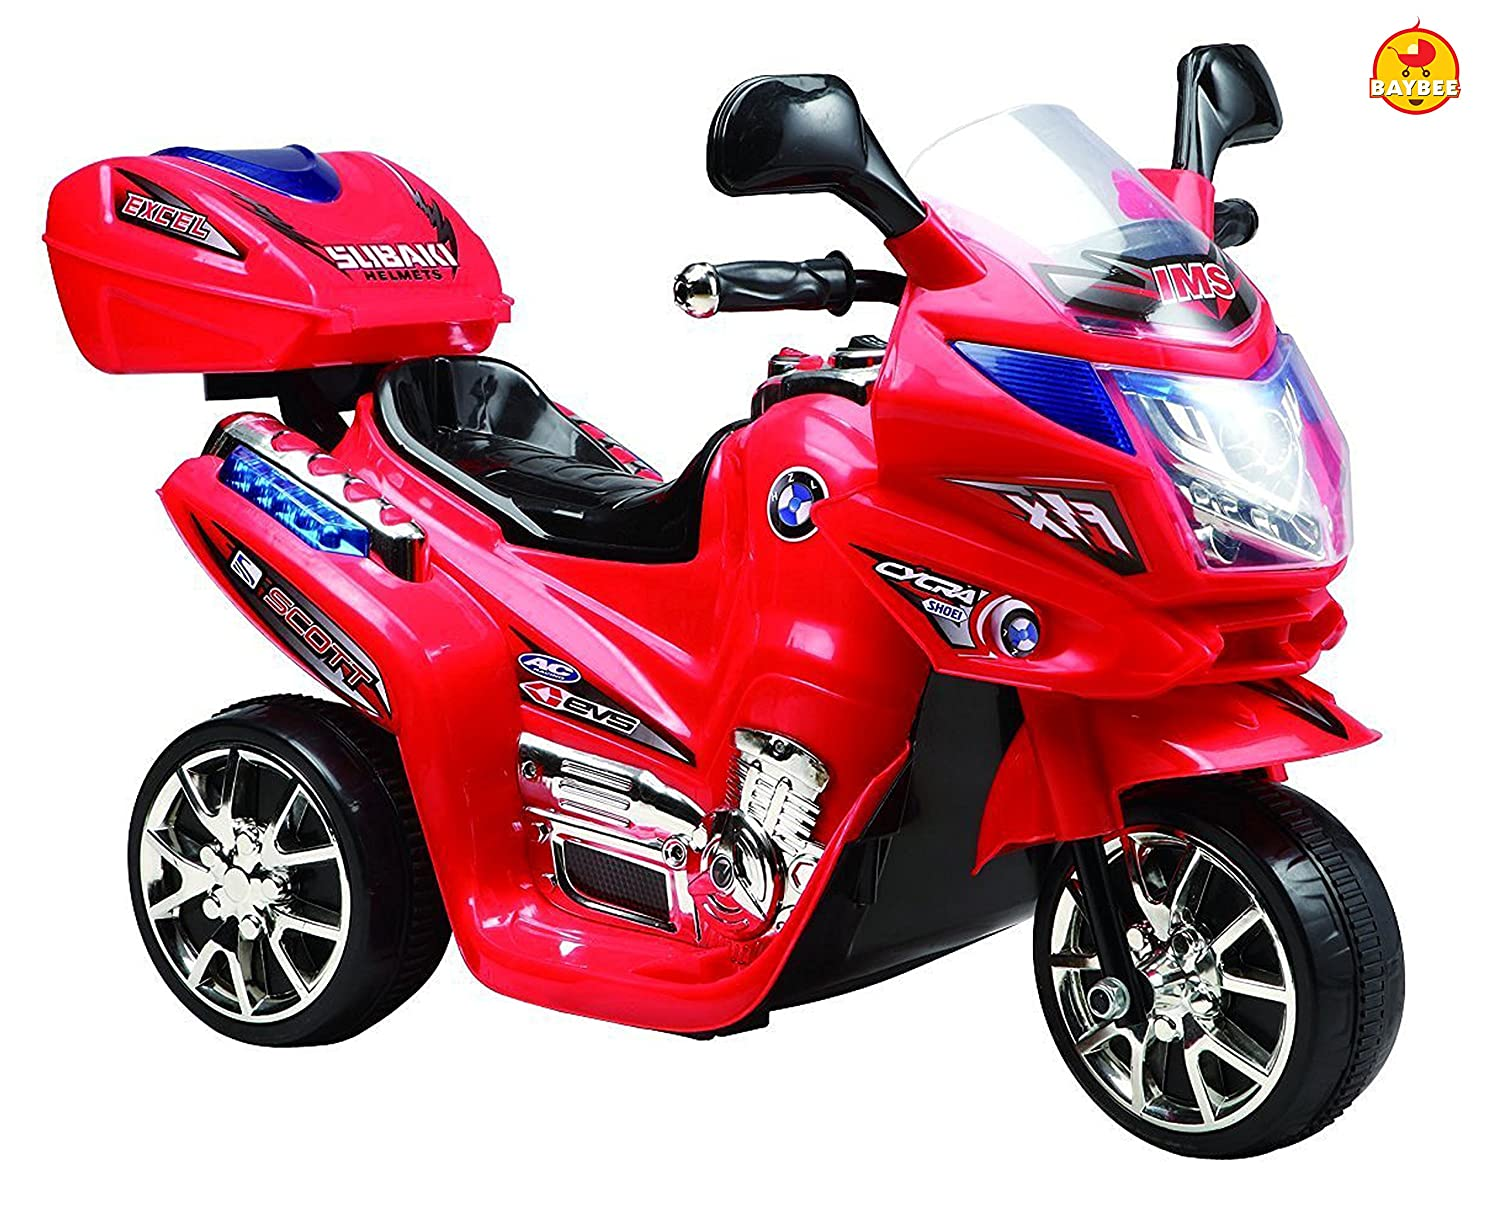 Toys Summer Store!! Upto 50% Off On Toys By Amazon | Baybee Samurai FX Ride ON Battery Operated Sports Bike (Red) @ Rs.3,999